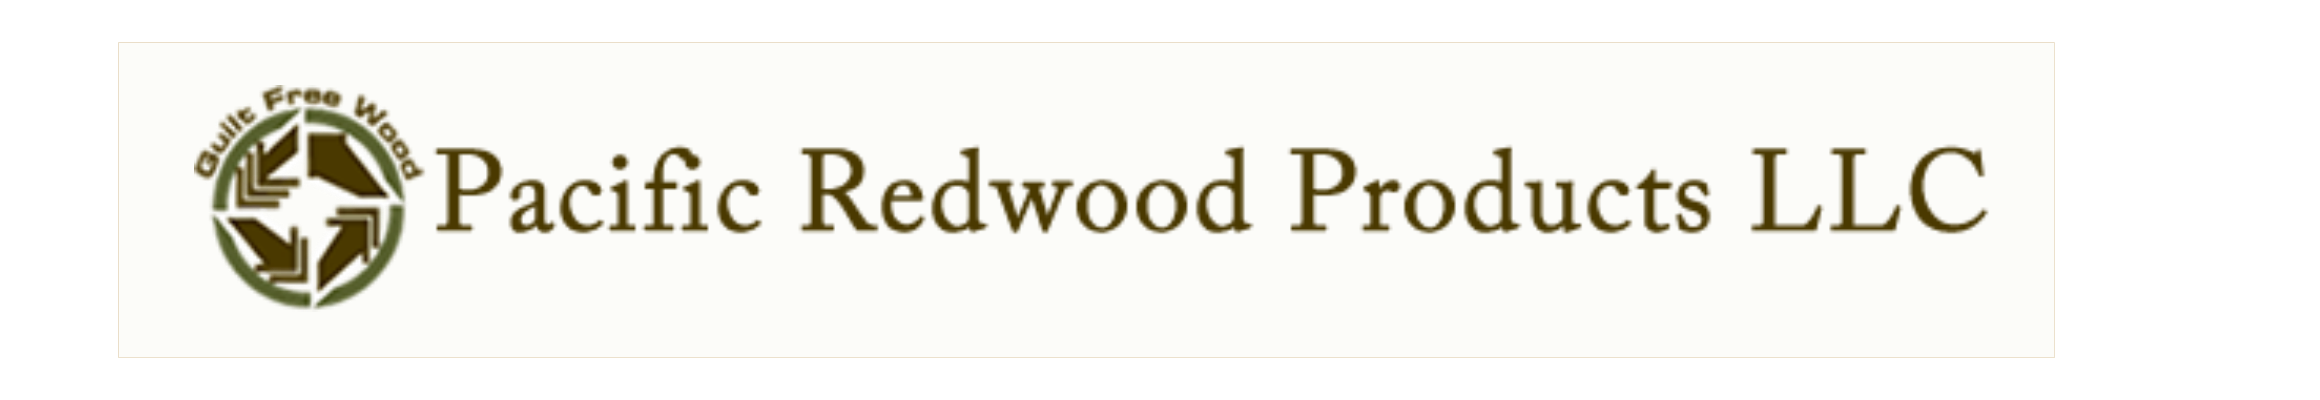 Guilt Free Wood Pacific Redwood Products LLC